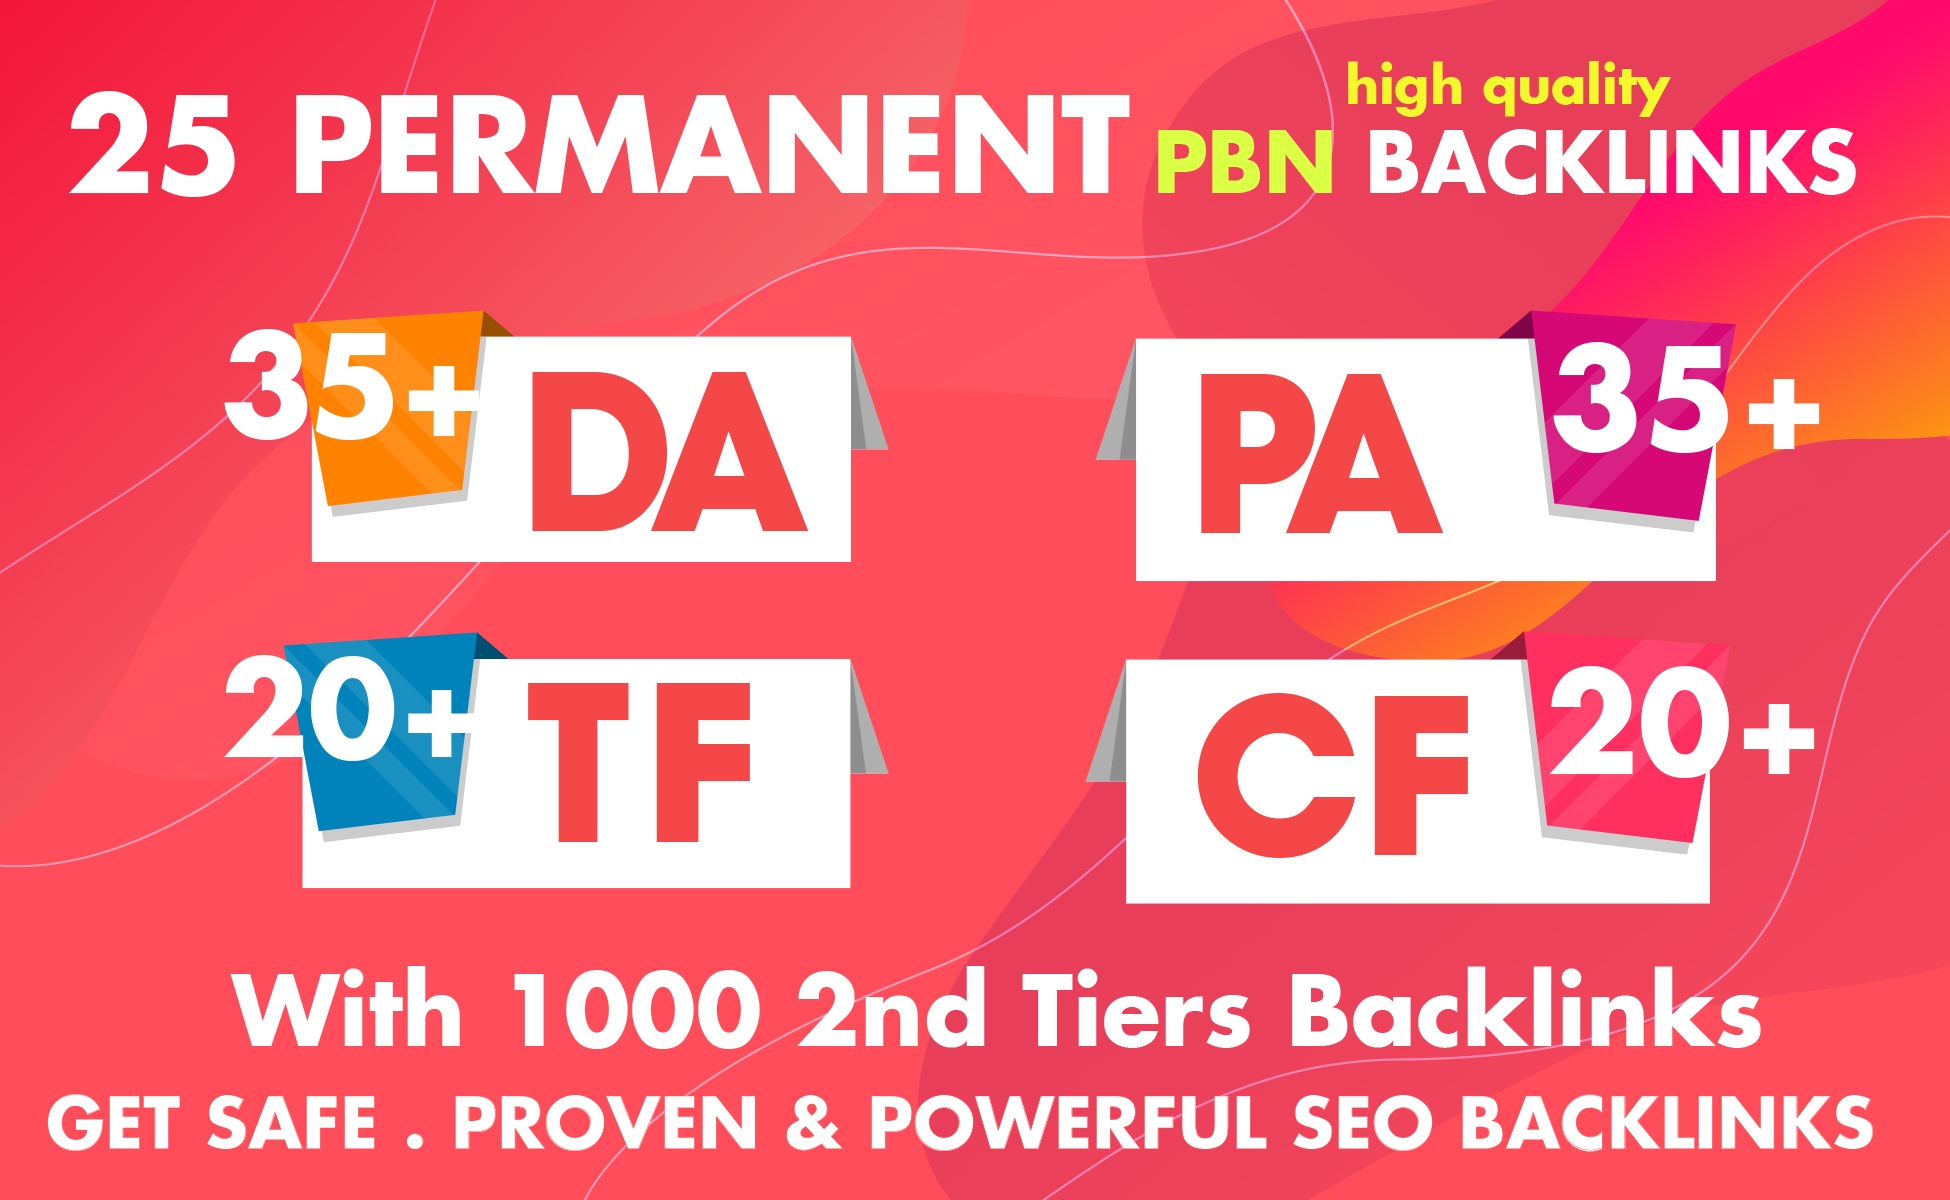 Build 25 Permanent Homepage PBN Backlinks with 1000 link juice 2nd Tiers Backlinks